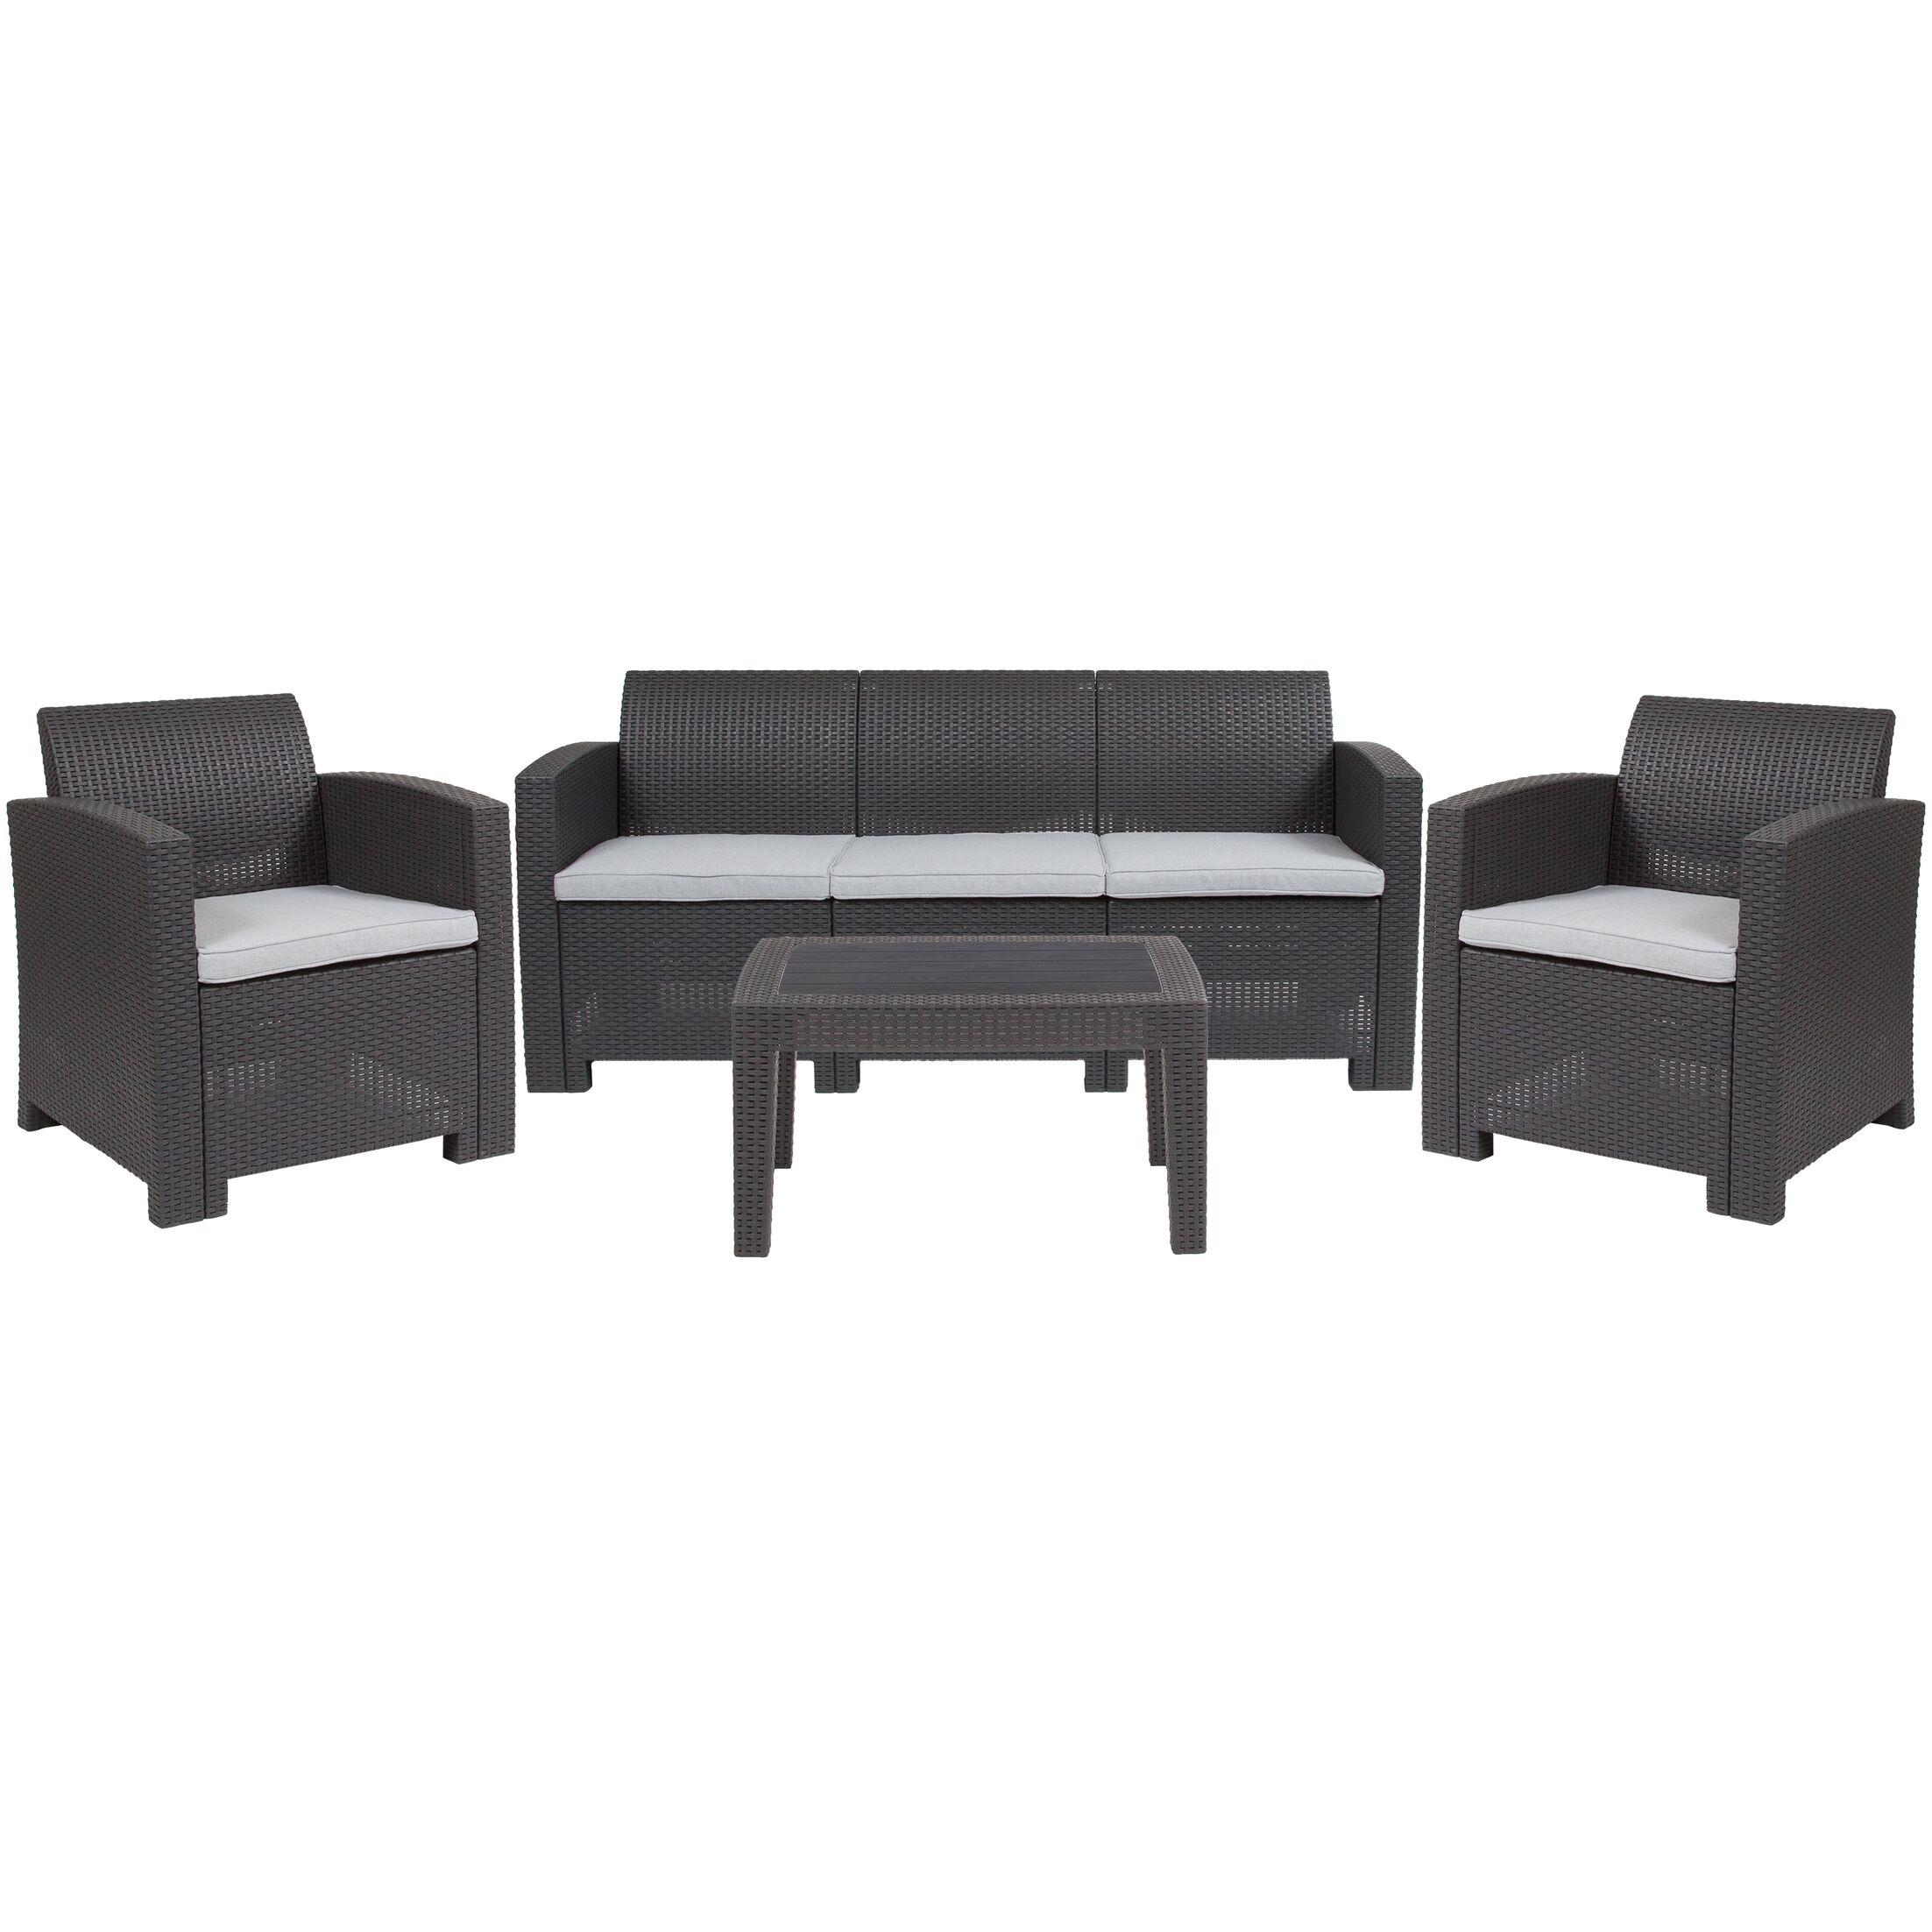 Fairbanks 4 Piece Rattan Conversation Set with Cushions